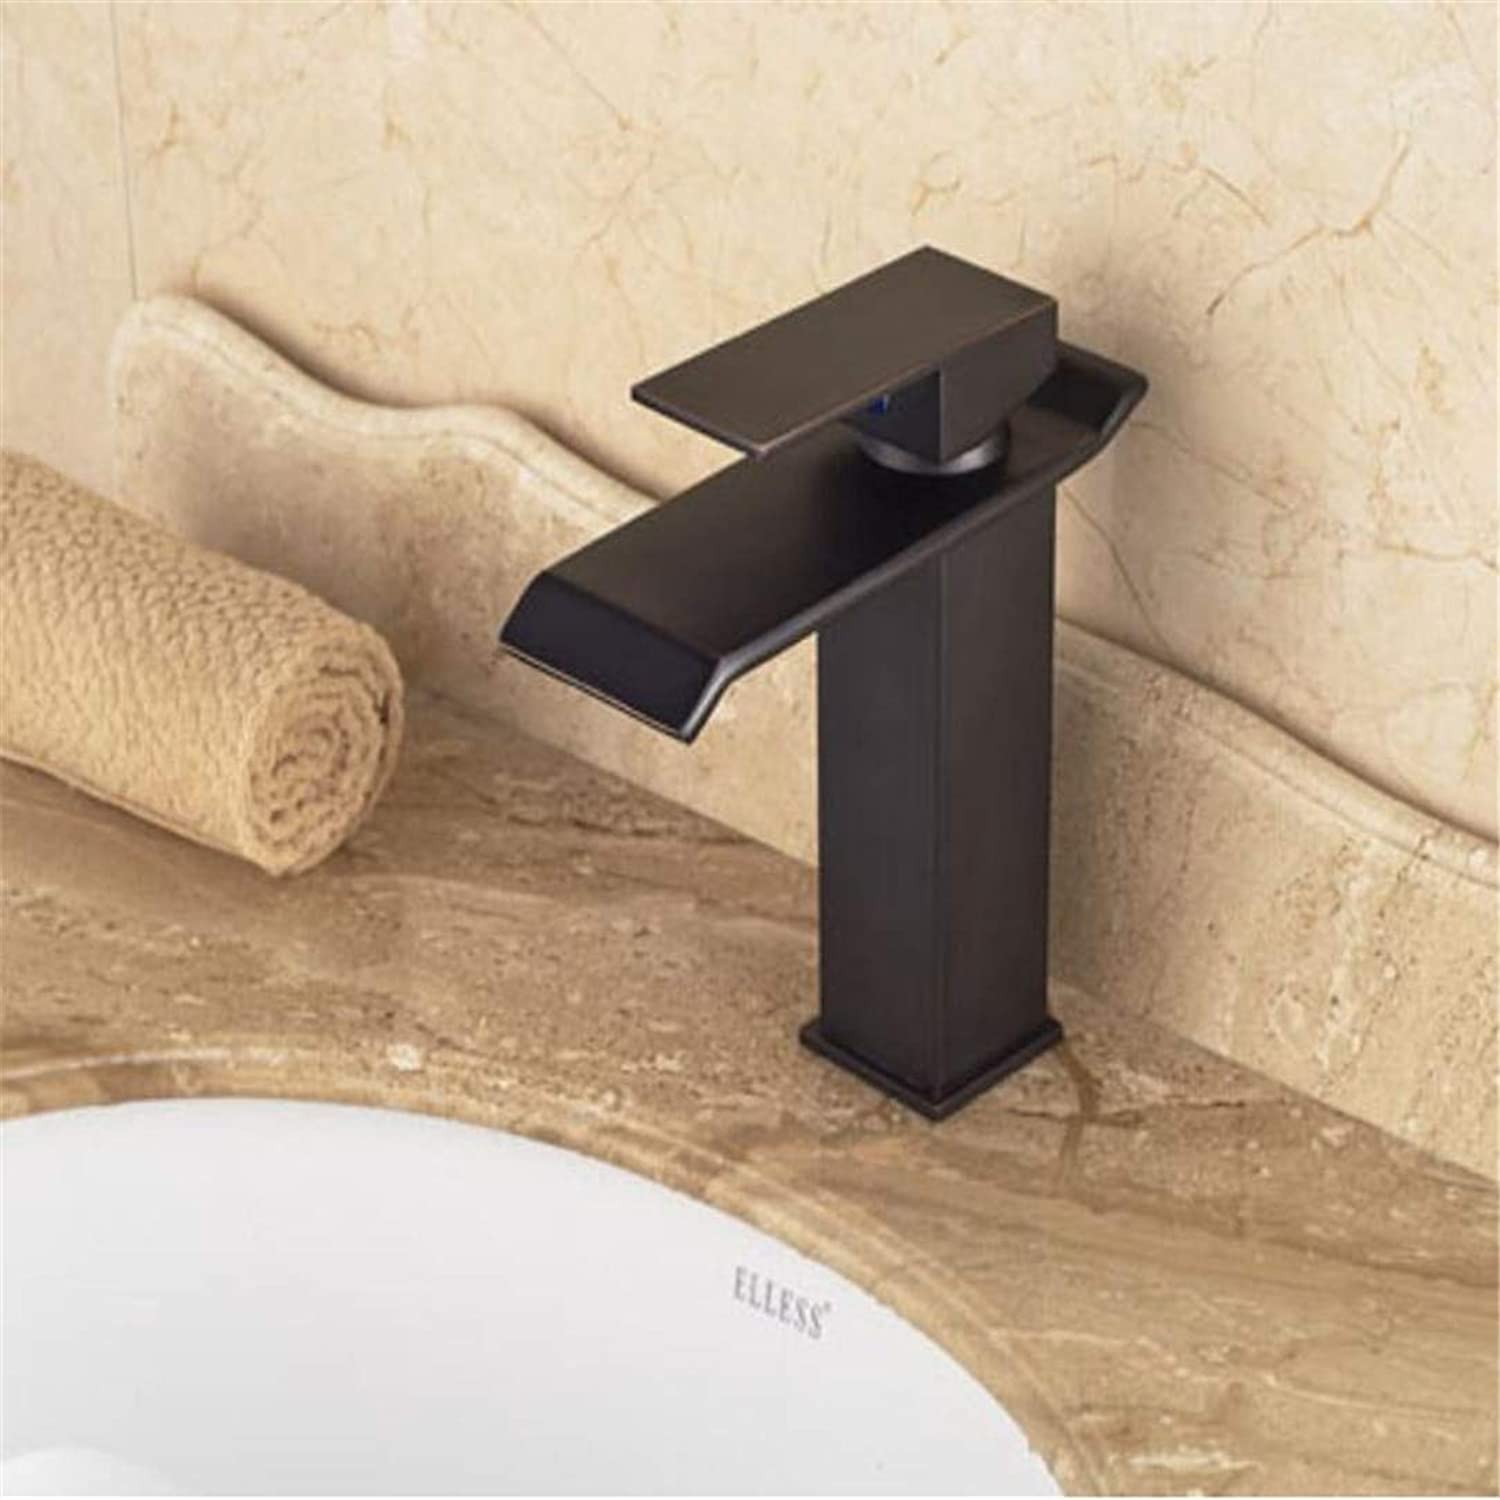 Faucet Washbasin Mixernew Traditional Style Oil Rubbed Bronze Waterfall Bathroom Basin Faucet Single Handle Mixer Tap